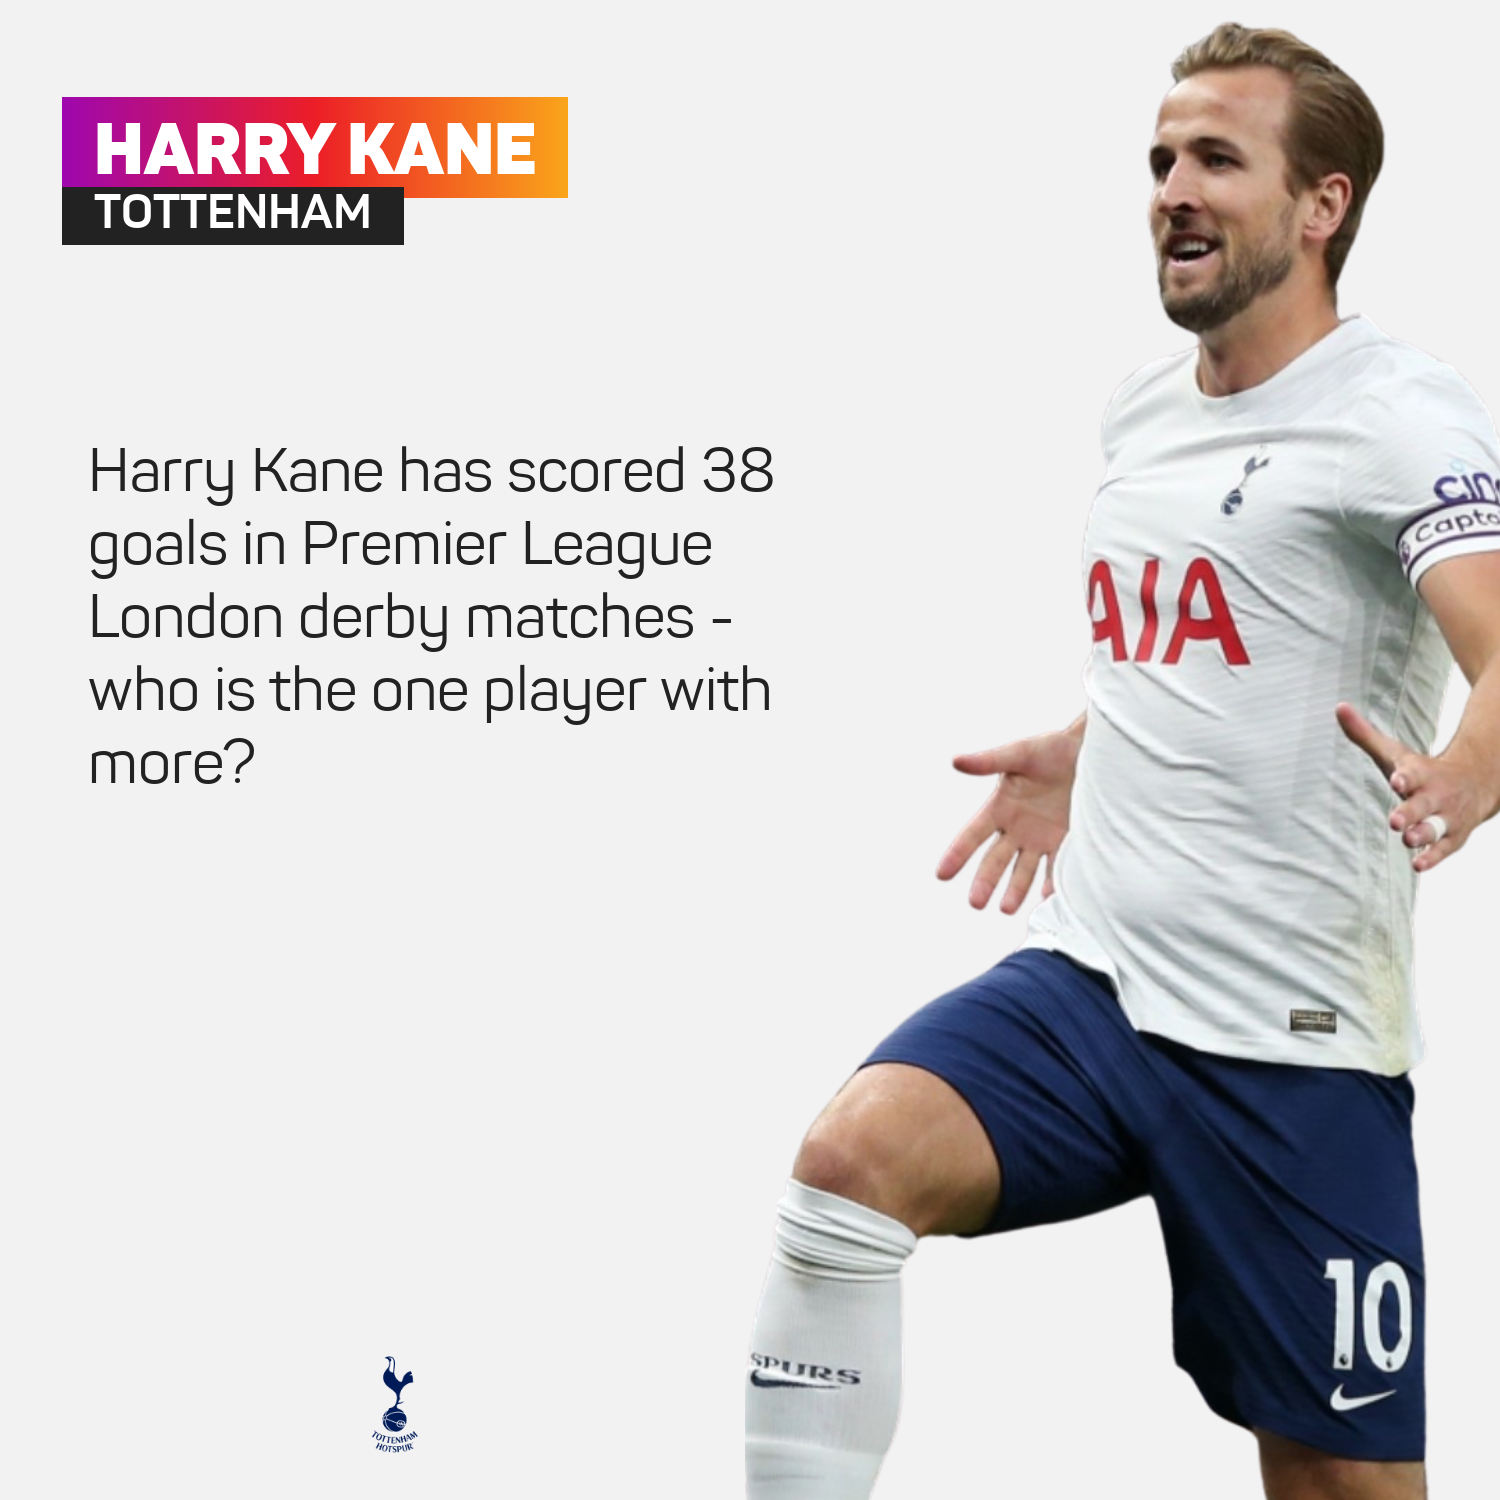 Harry Kane has a great record in London derbies